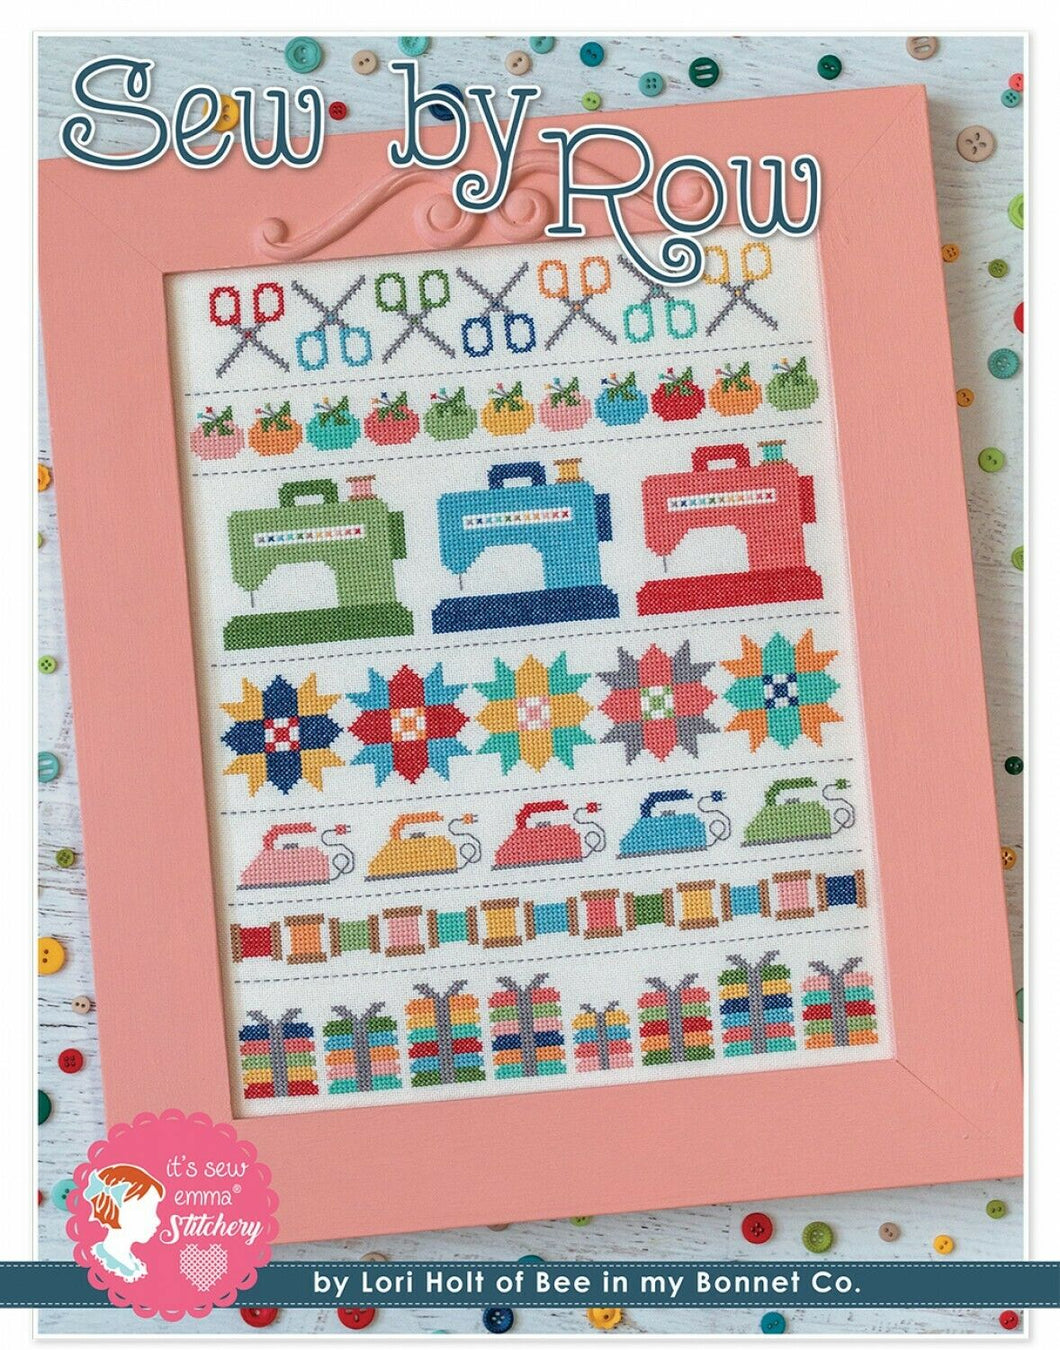 Sew By Row Cross Stitch Pattern with DMC Threads by Lori Holt